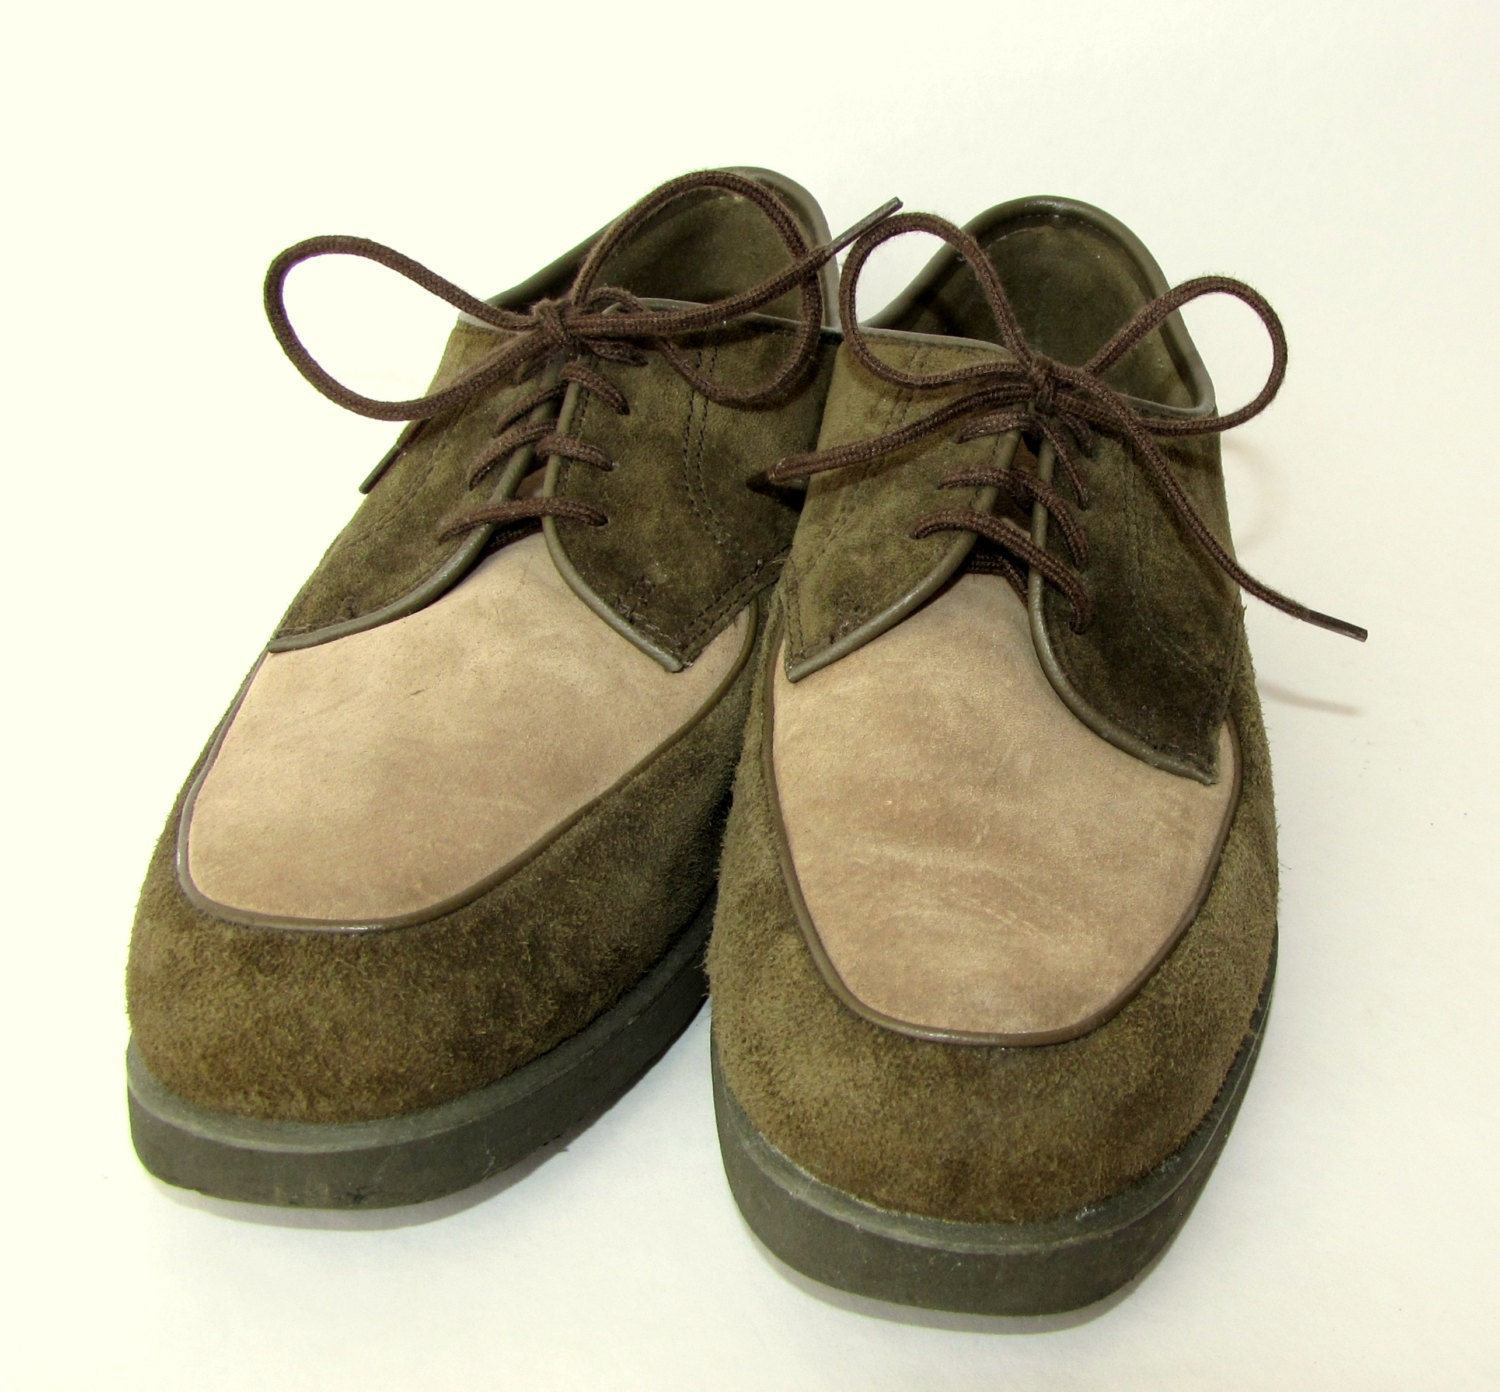 Old School Hush Puppies Shoes